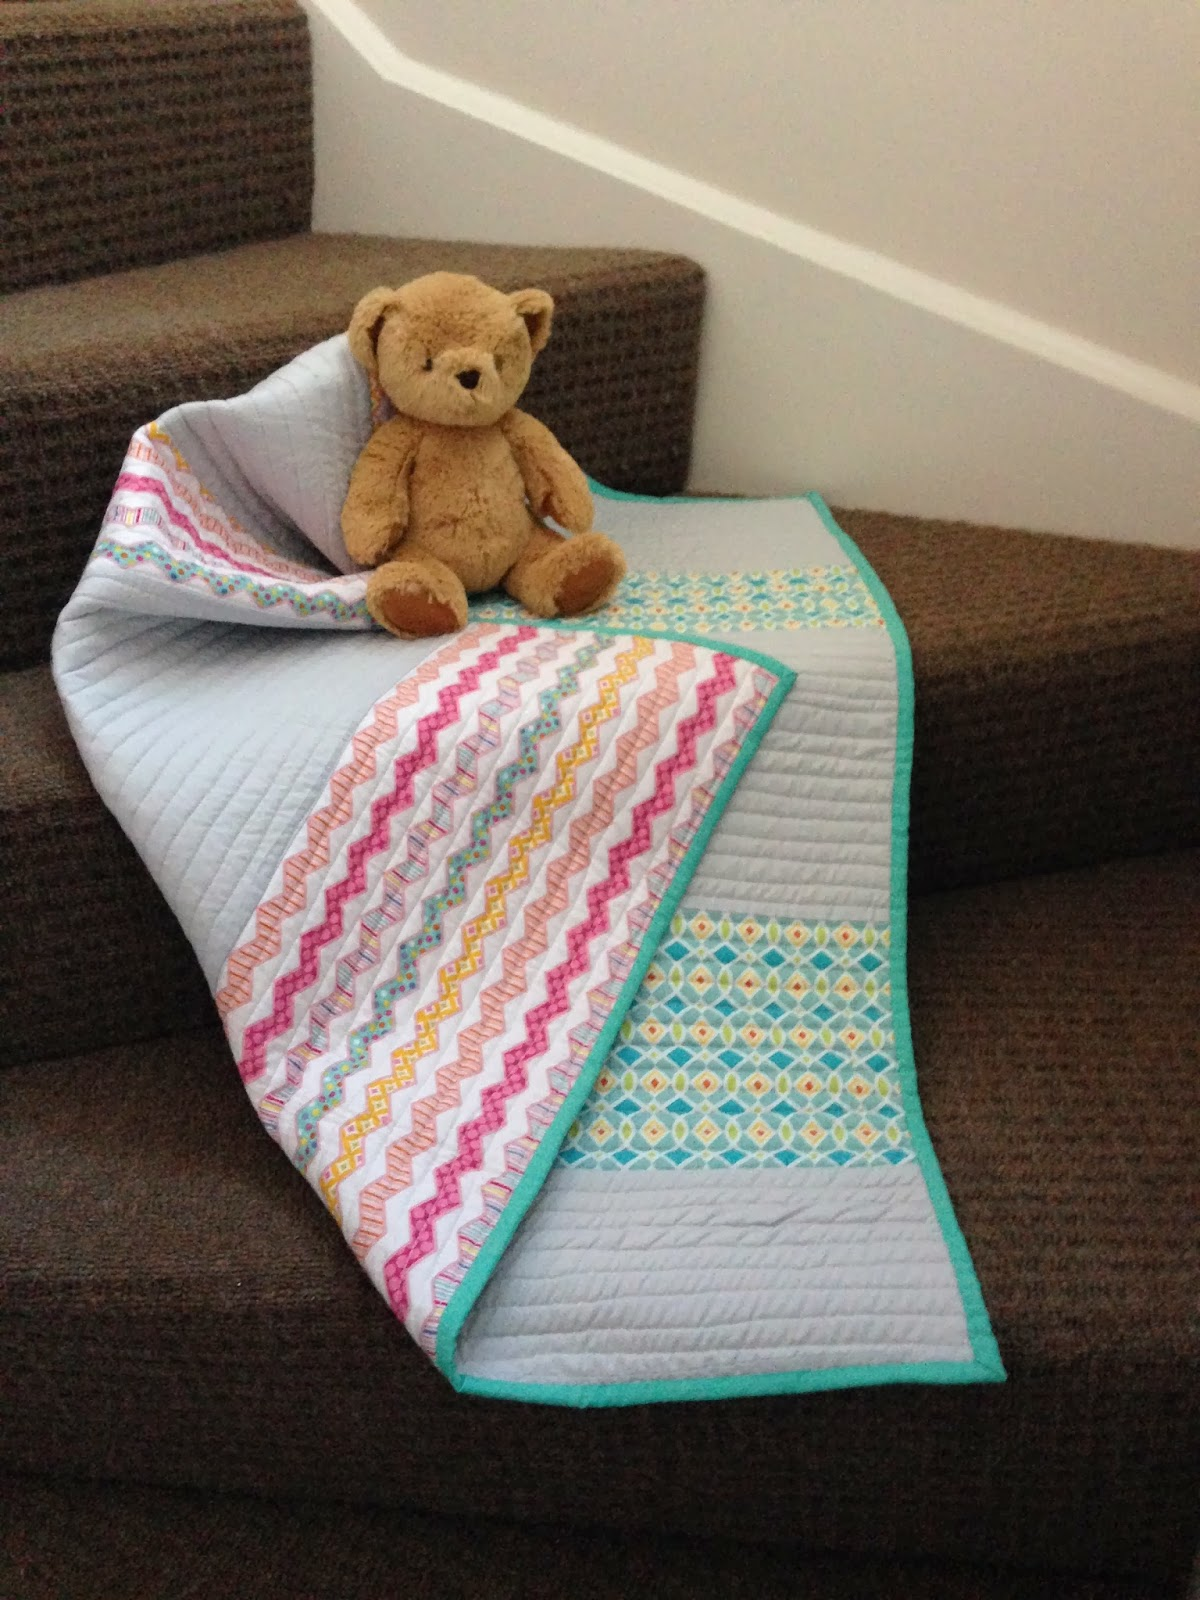 Bundles and buttons floor blanket for baby for Floor quilt for babies